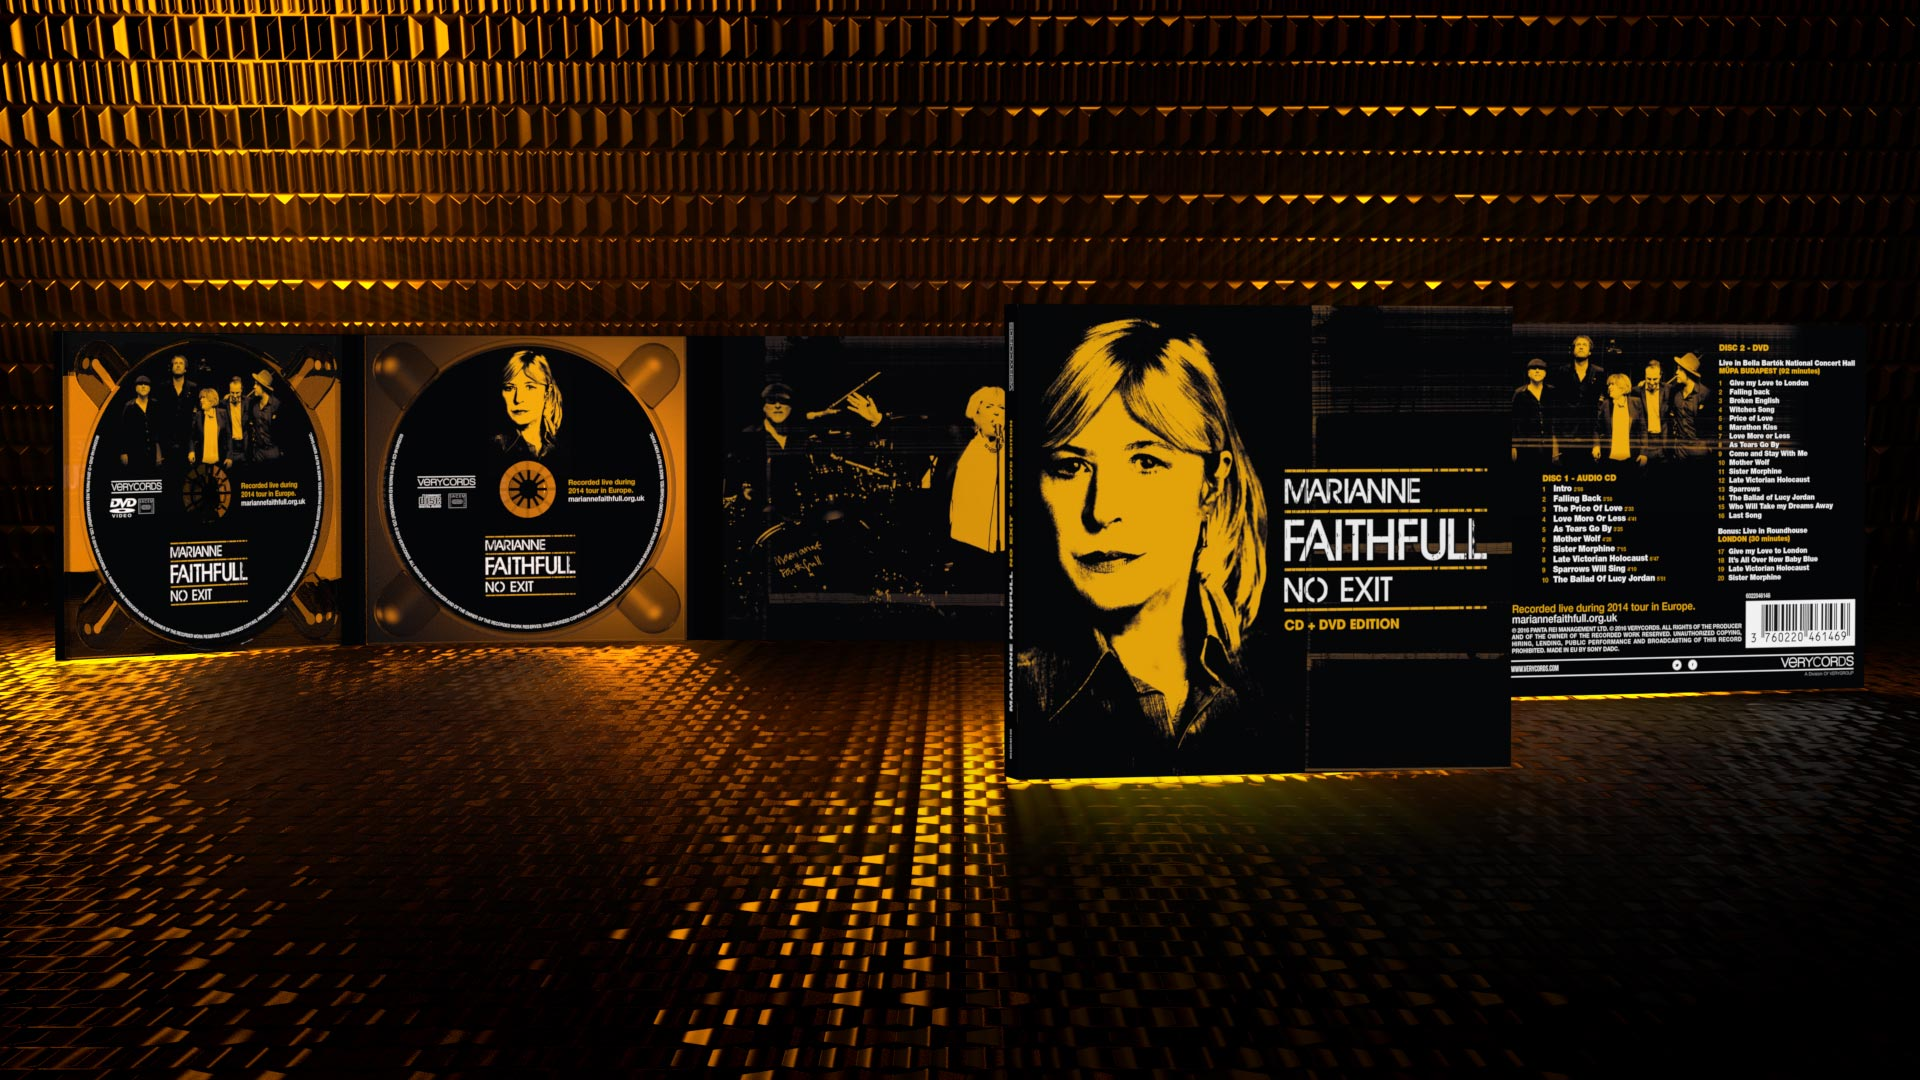 Design of the combo audio+video Live Album of Marianne Faithfull No Exit. Recorded during the 50th Anniversary Tour.